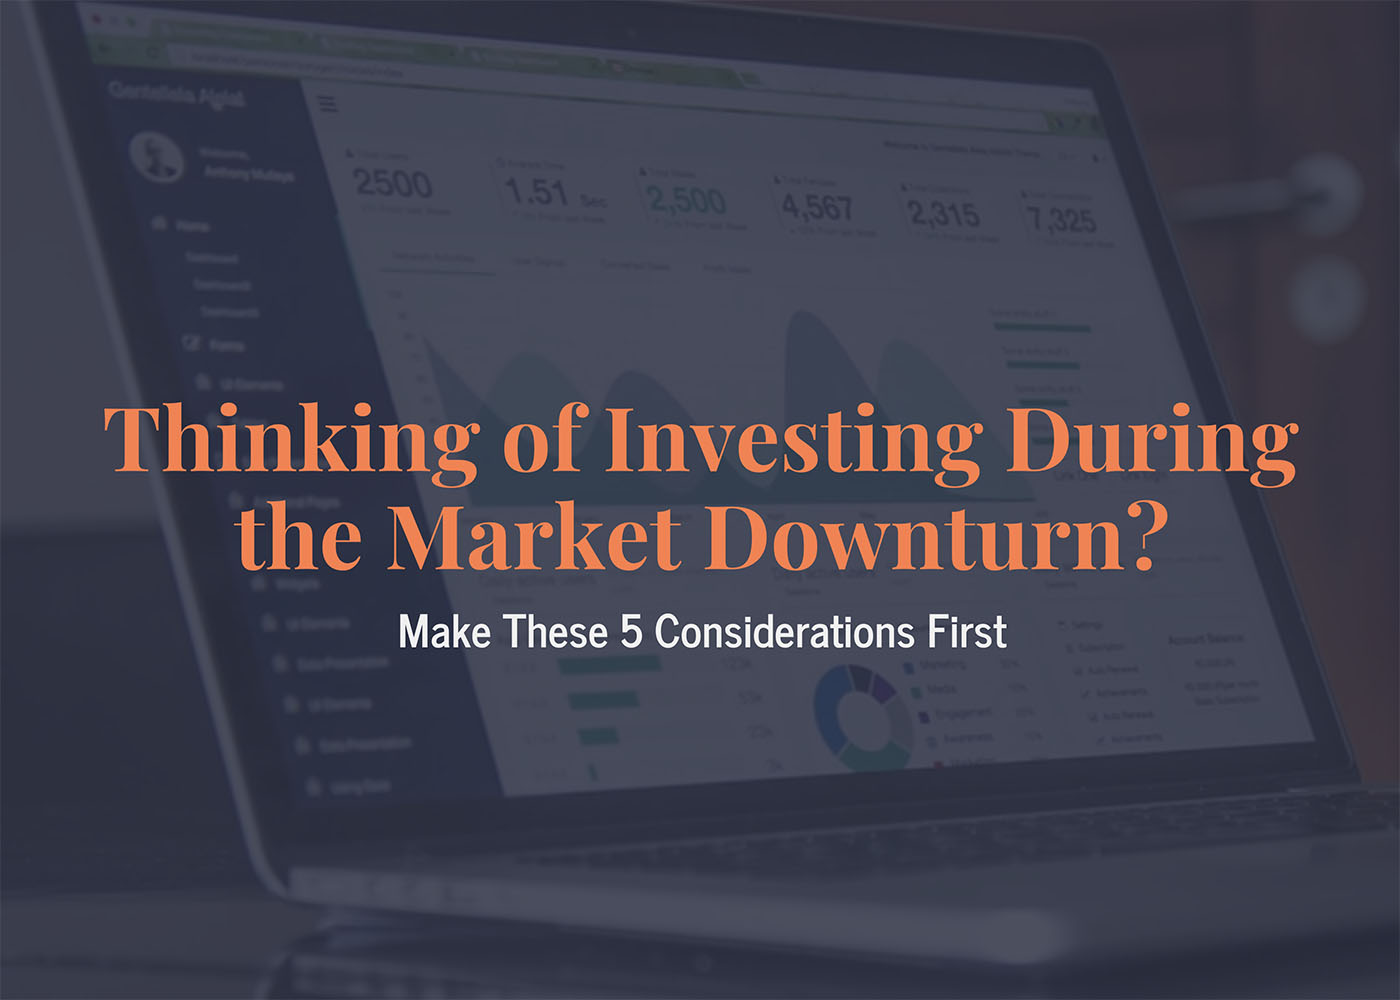 [Infographic] Thinking of Investing During the Market Downturn? Make These 5 Considerations First Thumbnail